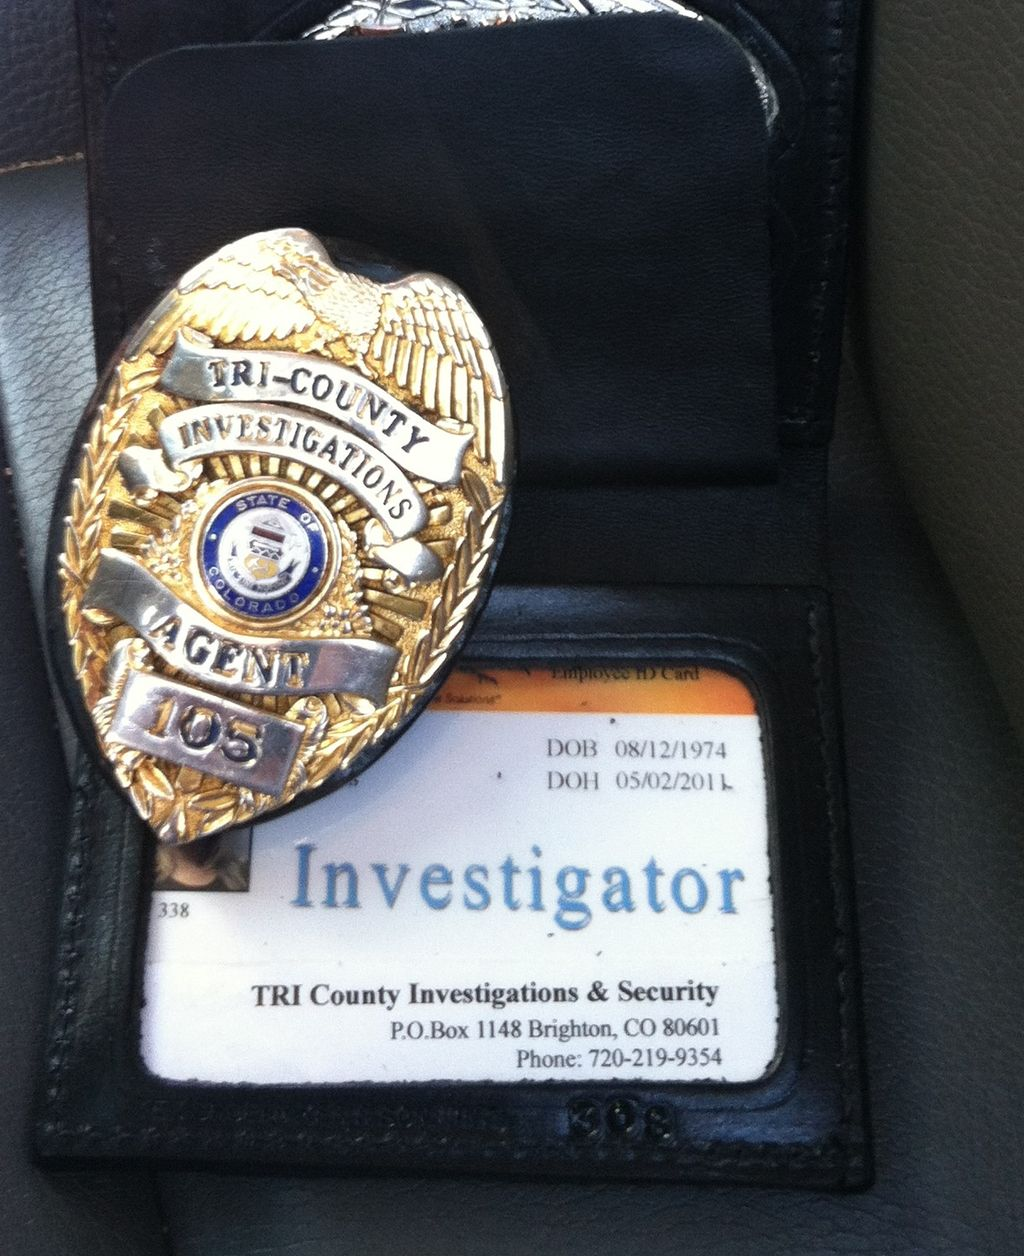 Tri County Investigations & Security